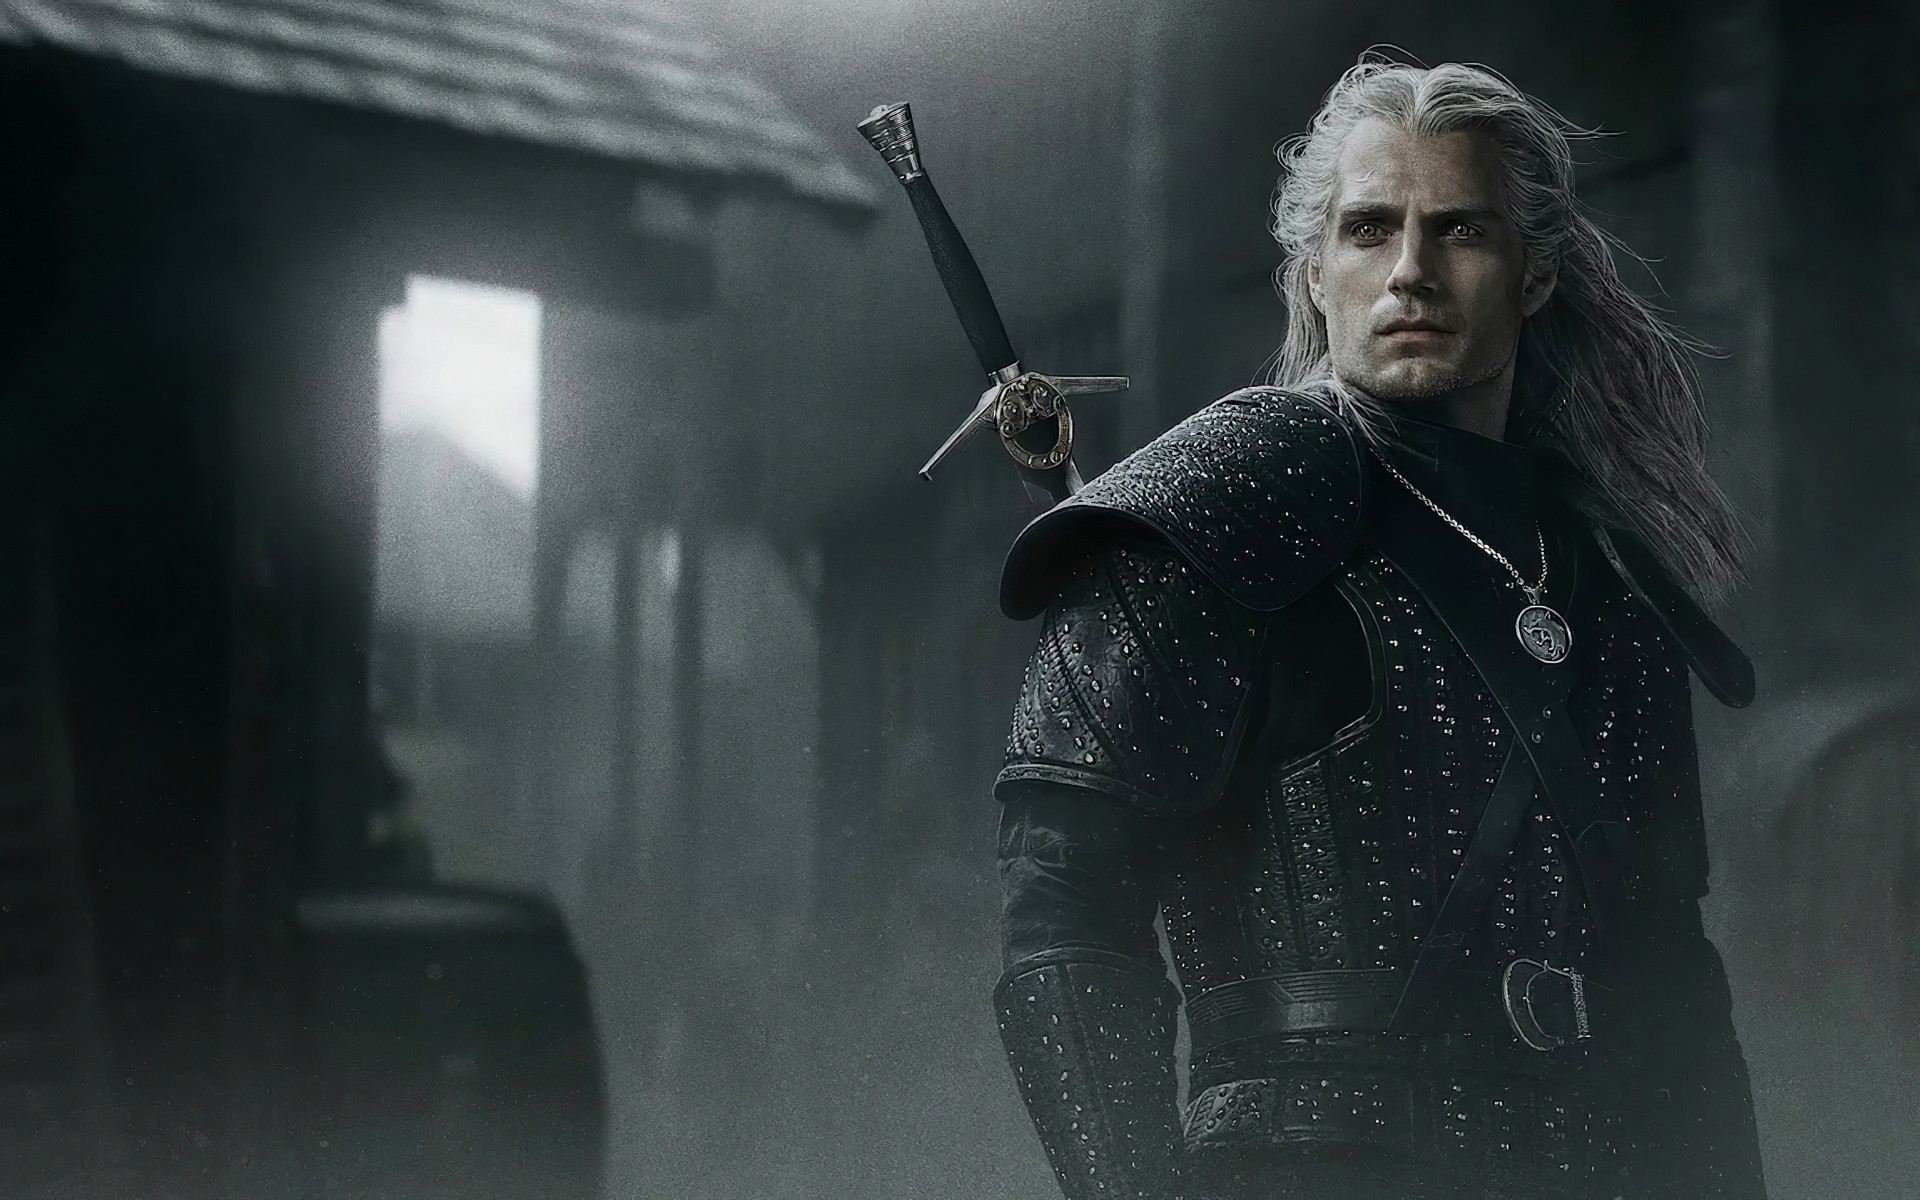 Henry Cavli in The Witcher wallpaper 1920x1200